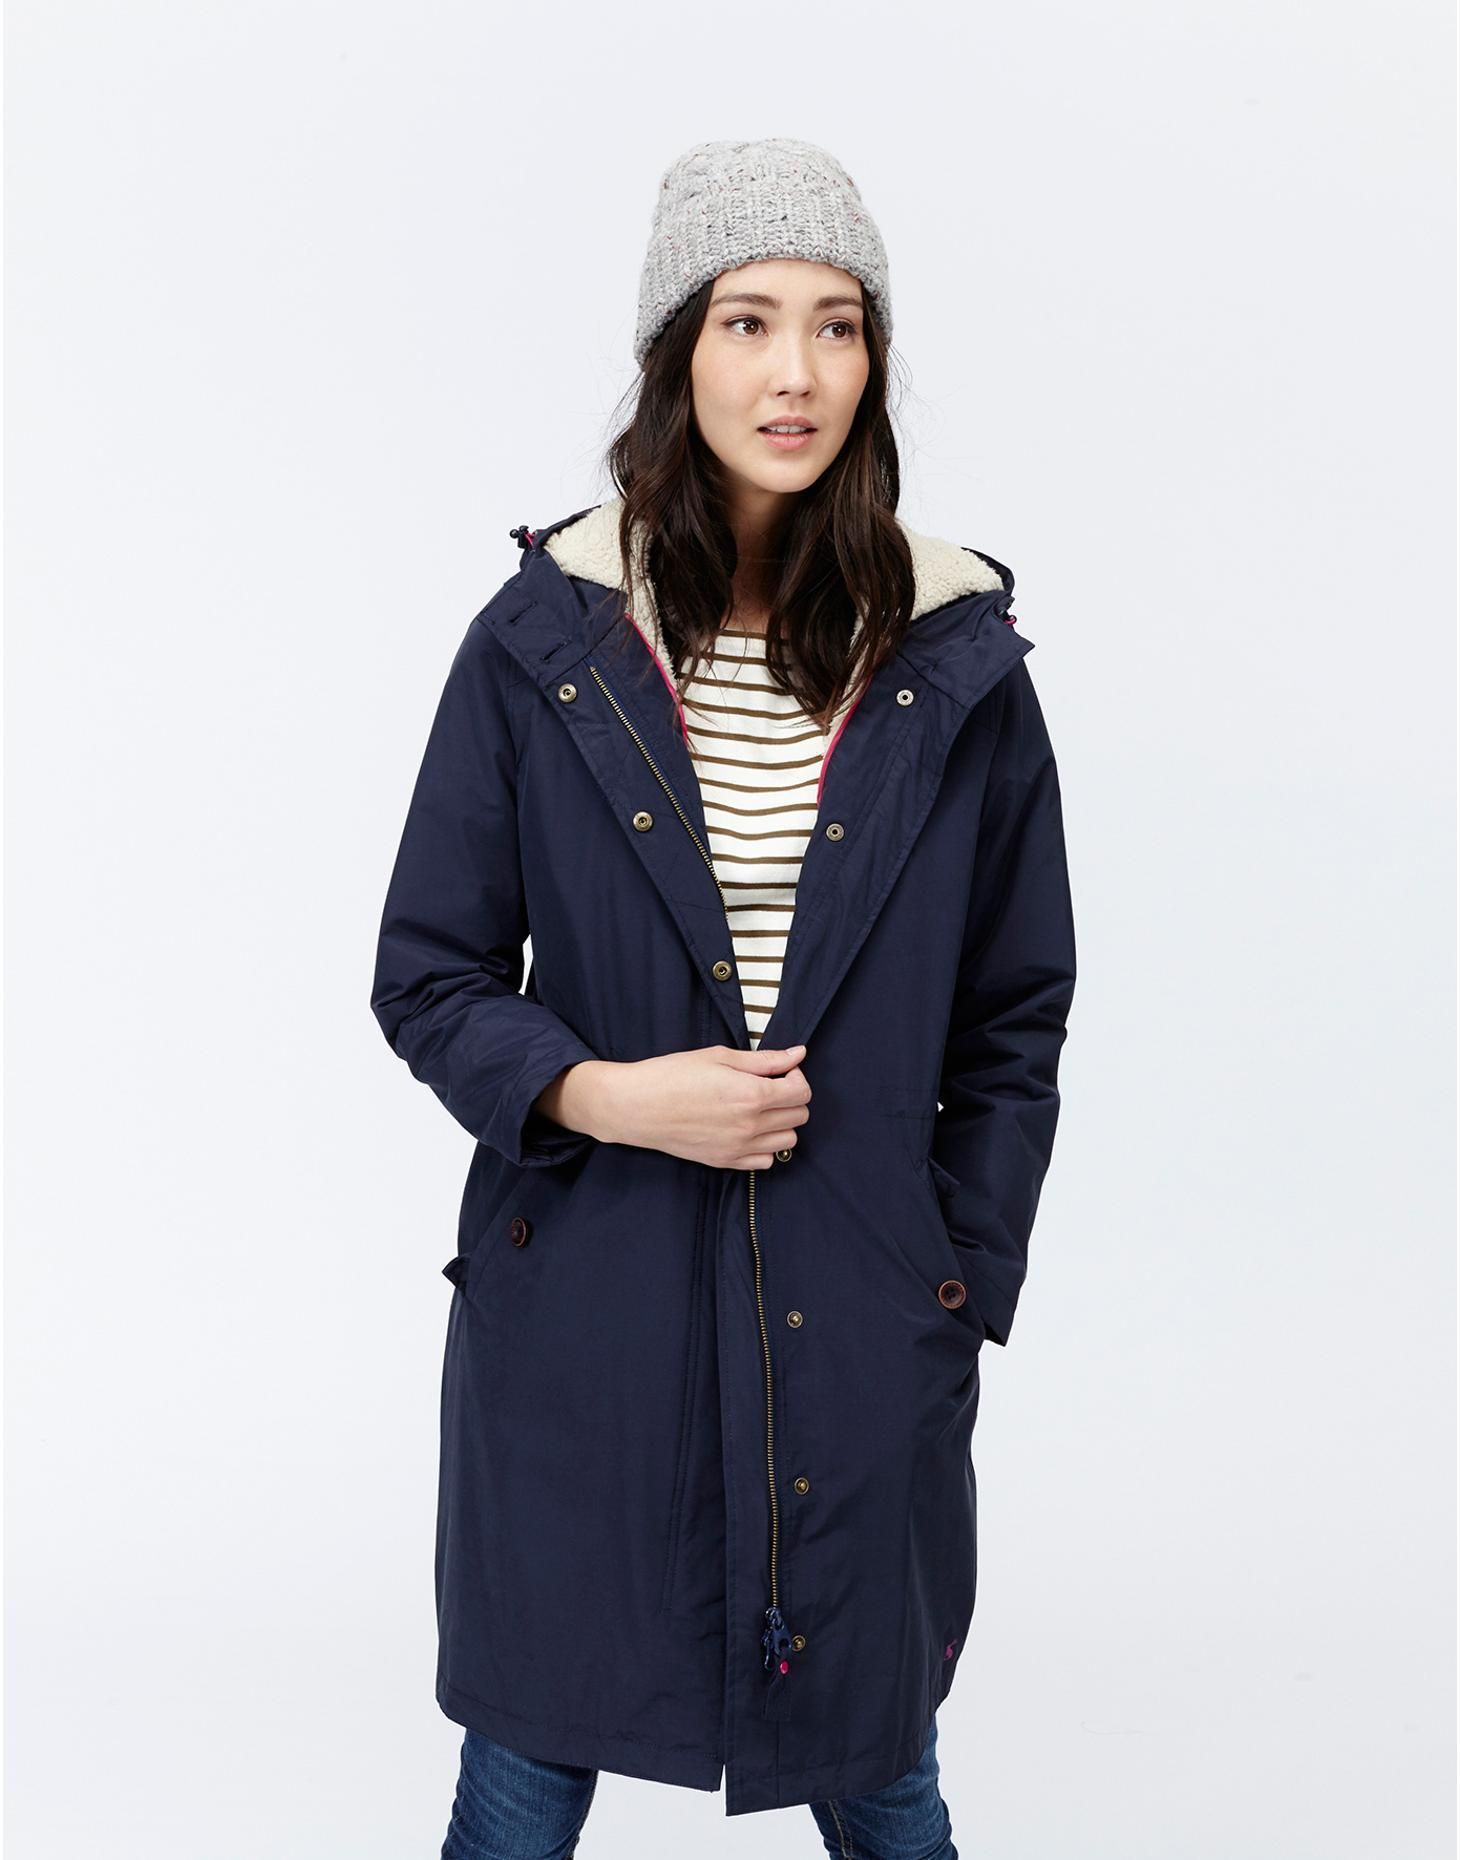 Joules Womens Waterproof Longline Parka, Marine Navy. Part of our ...